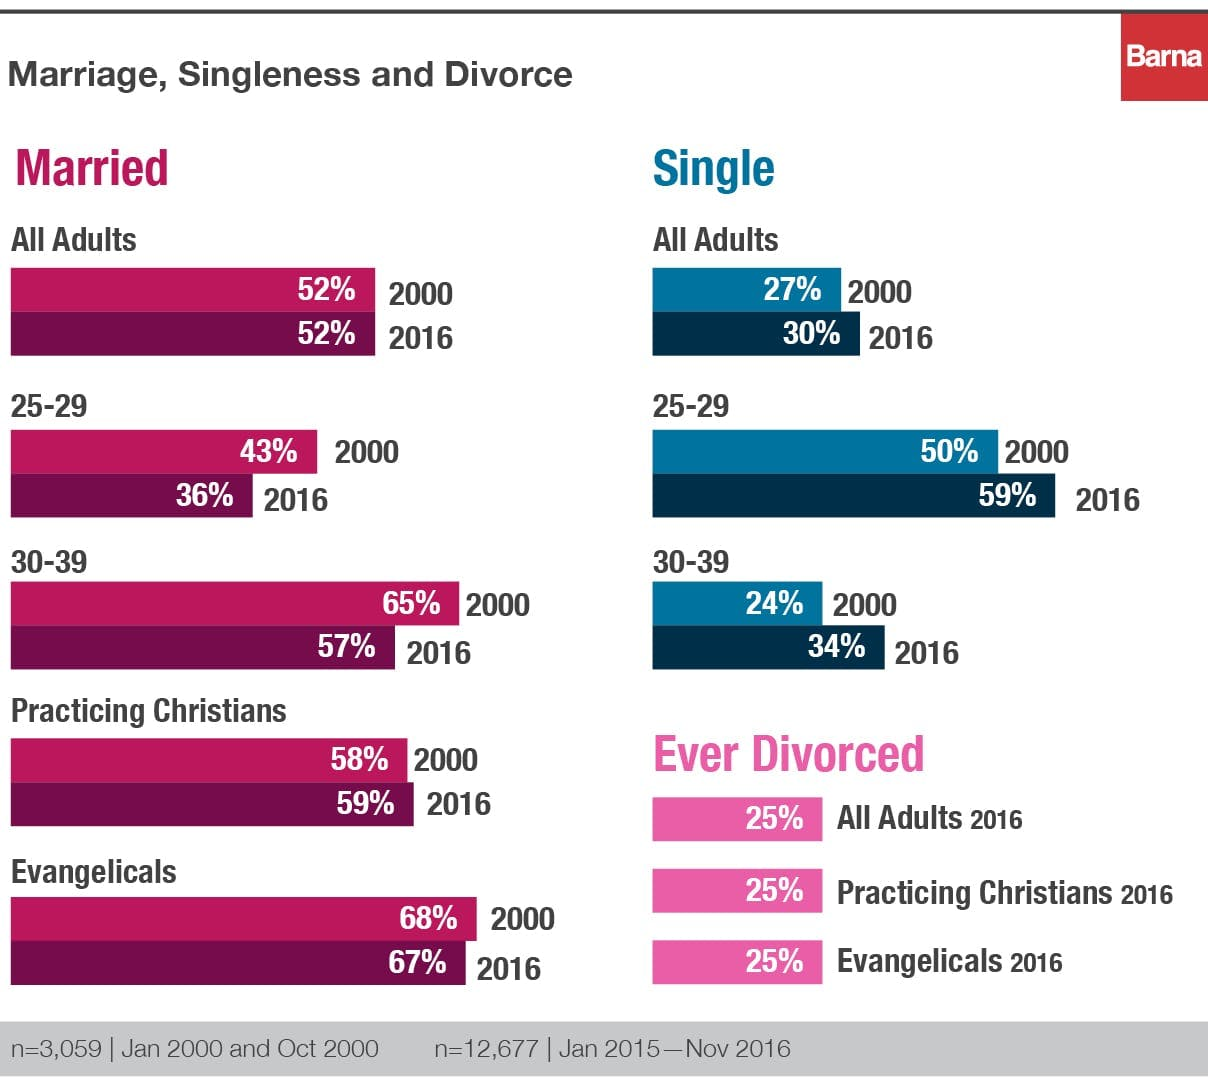 marriage, singleness and divorce